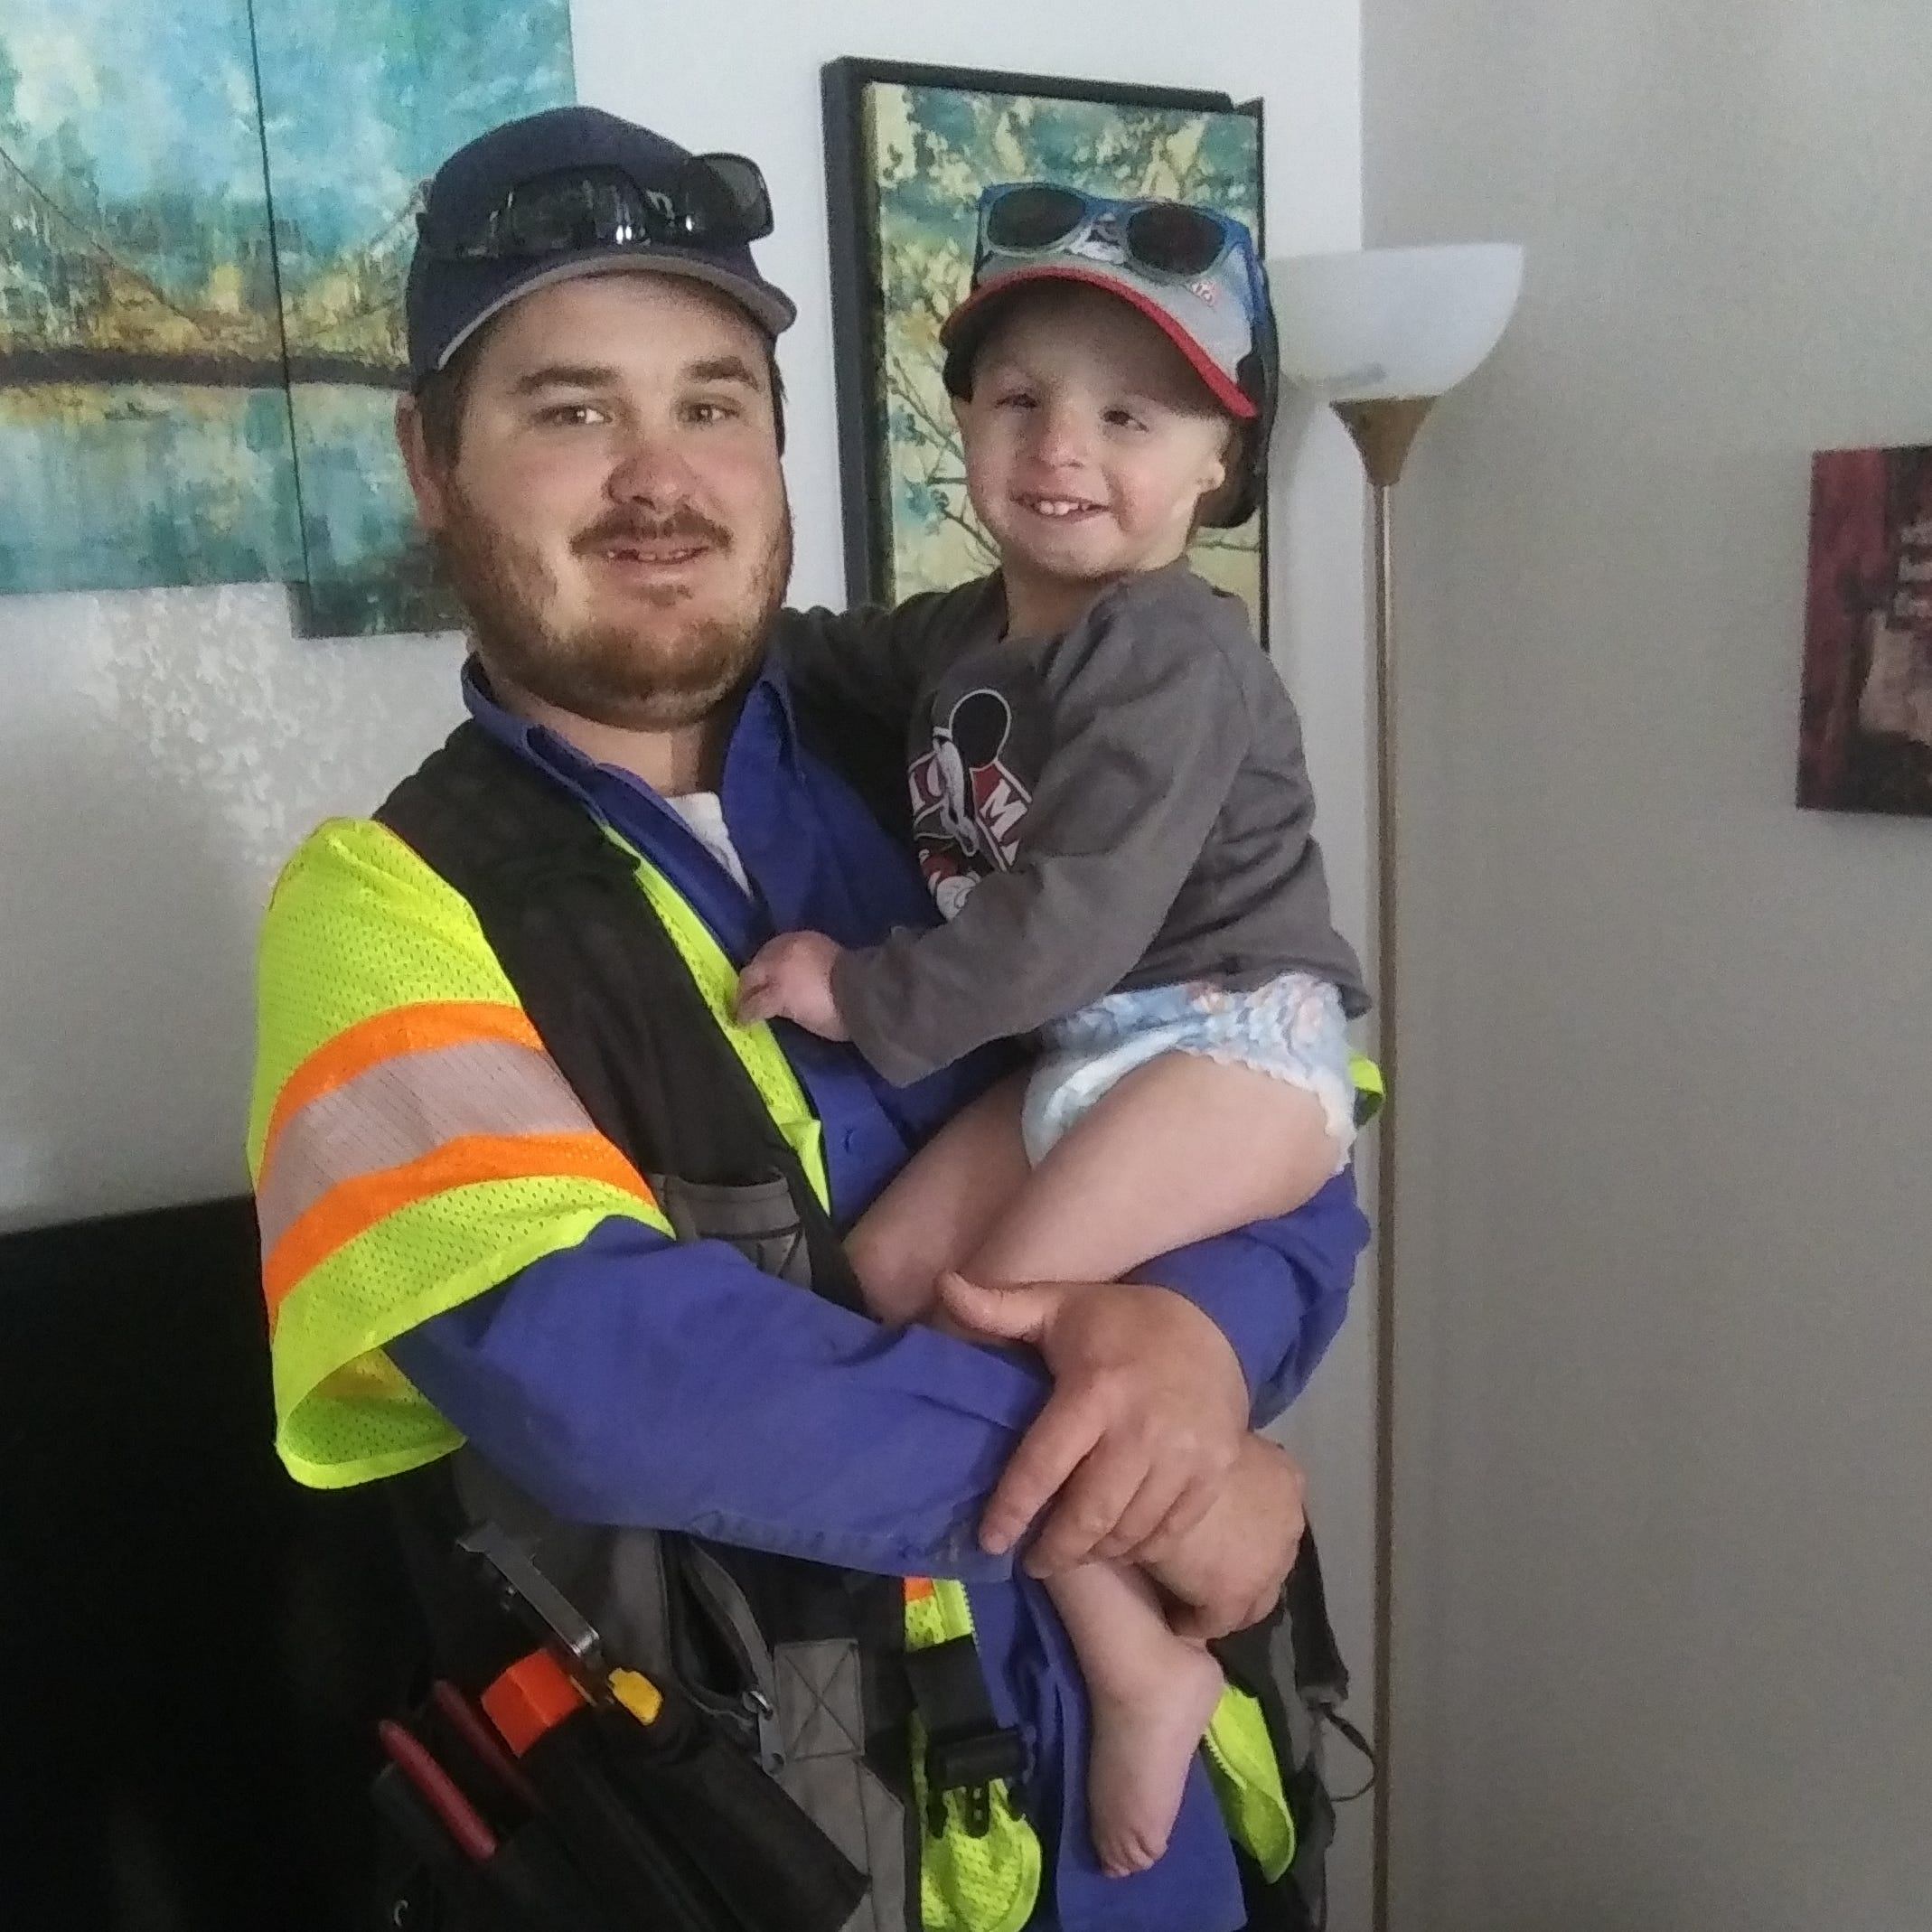 Charter internet guy makes connection with boy during house call in Gardnerville